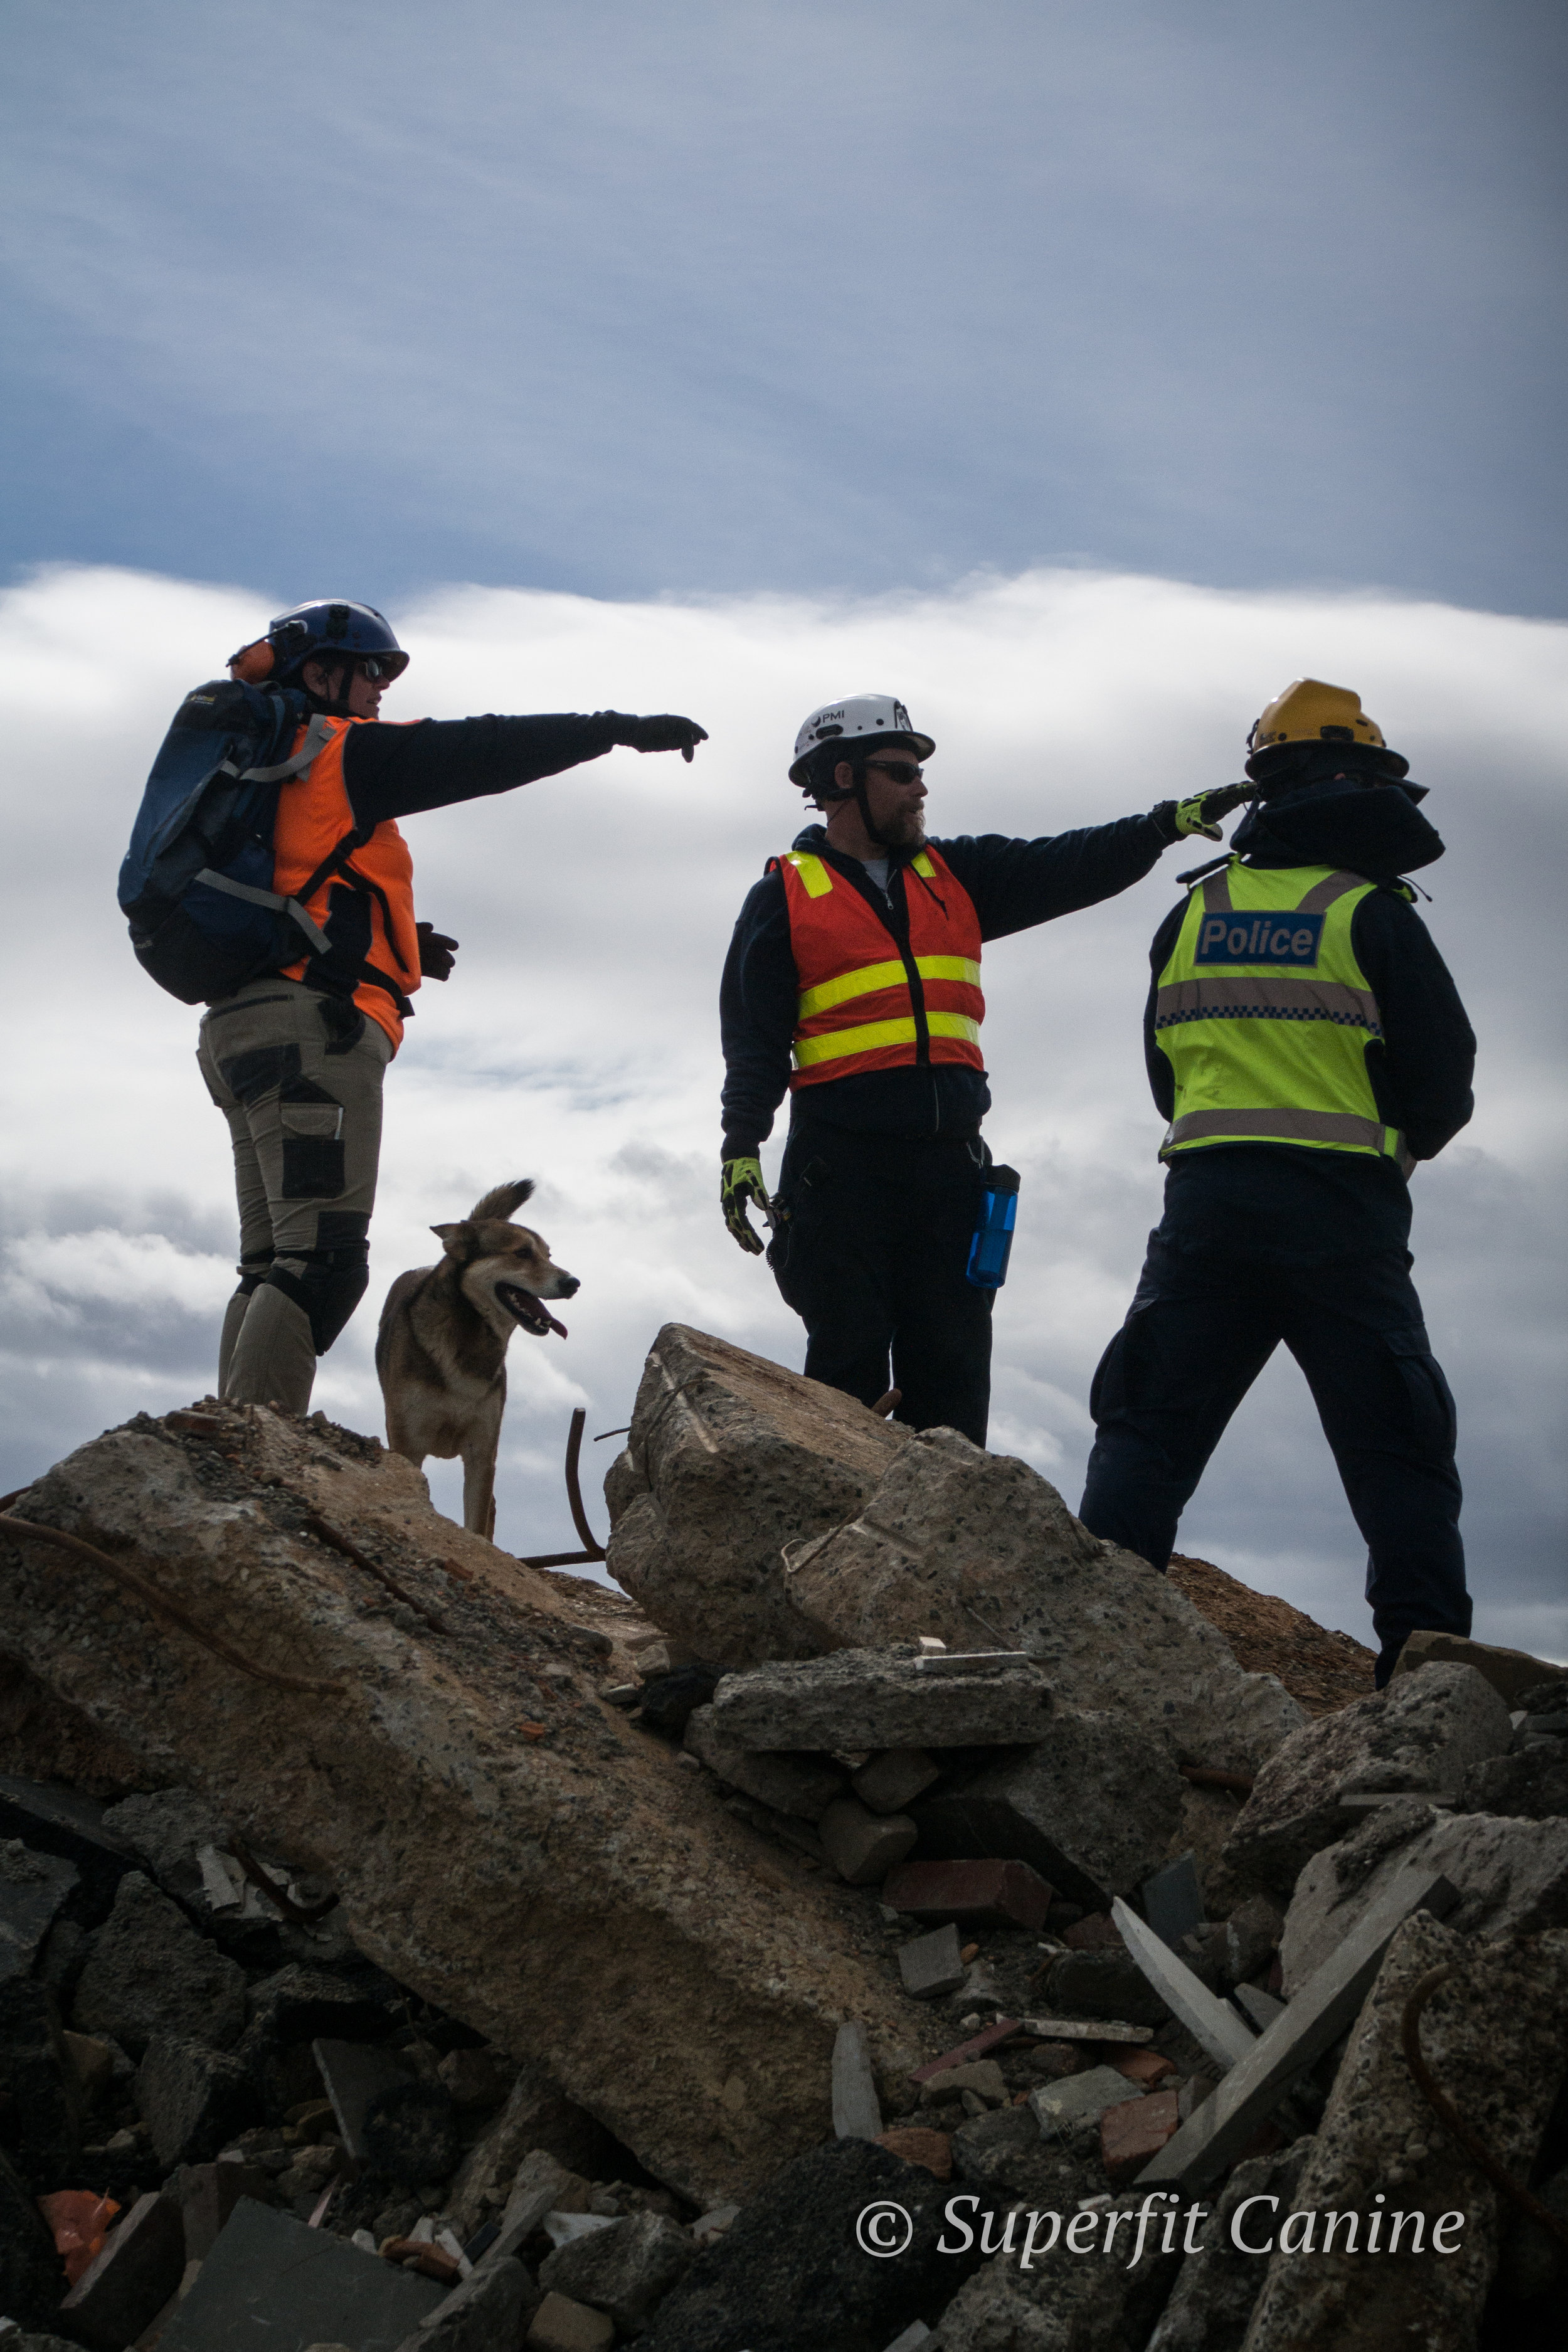 Instructor Eric Darling, handler Adele Jago and Sgt. Claude Silinzieds (Victoria Police Dog Squad) discuss search strategy as K9 Boof (Search Dogs Sydney) awaits the next command.